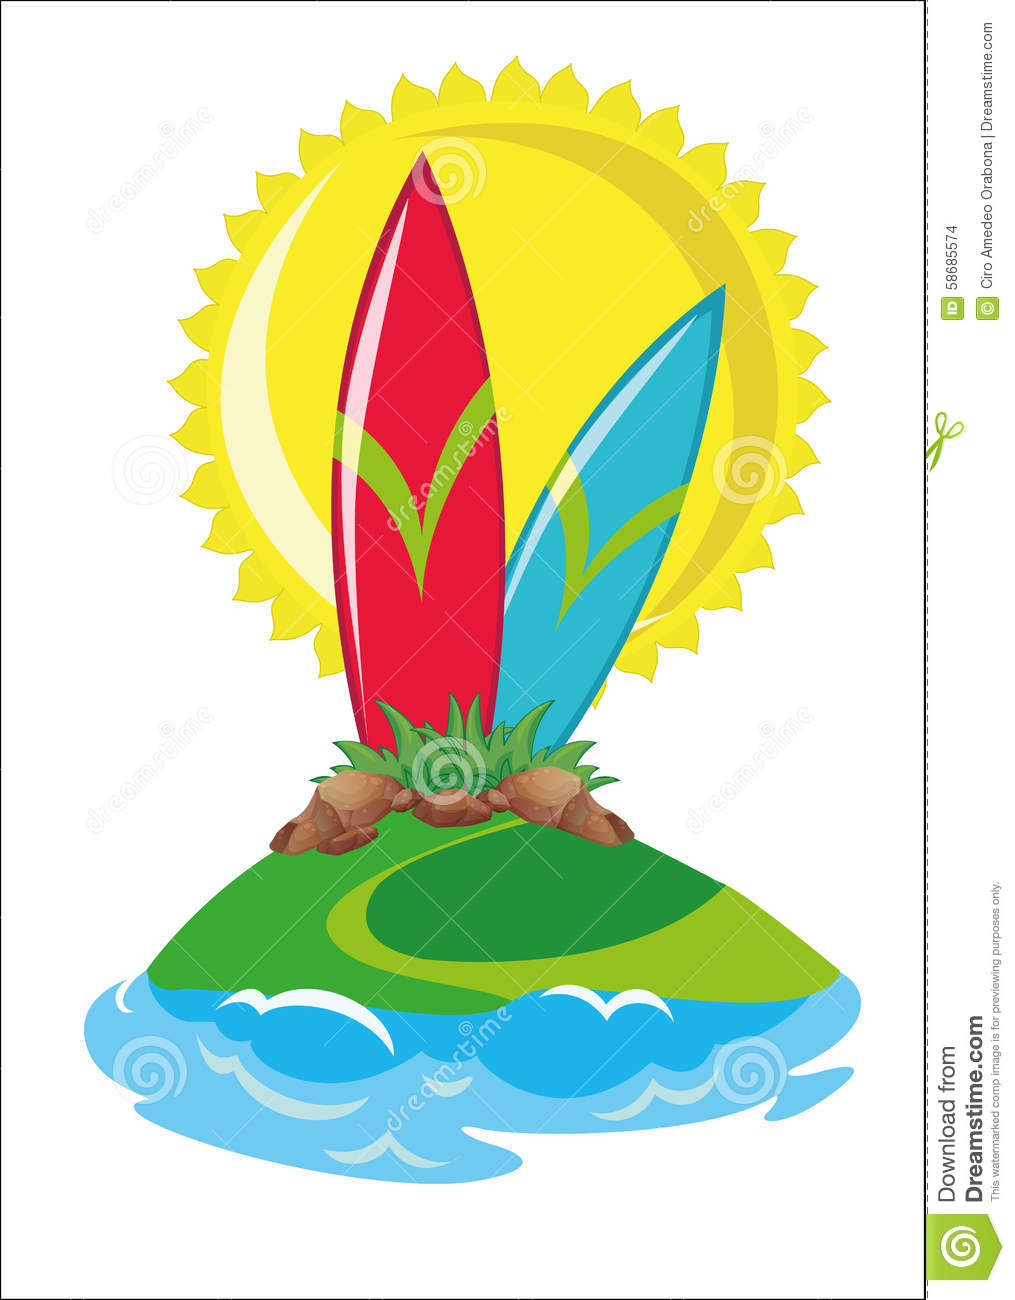 702f97b59dc Surf in island with sun and sea. More similar stock illustrations